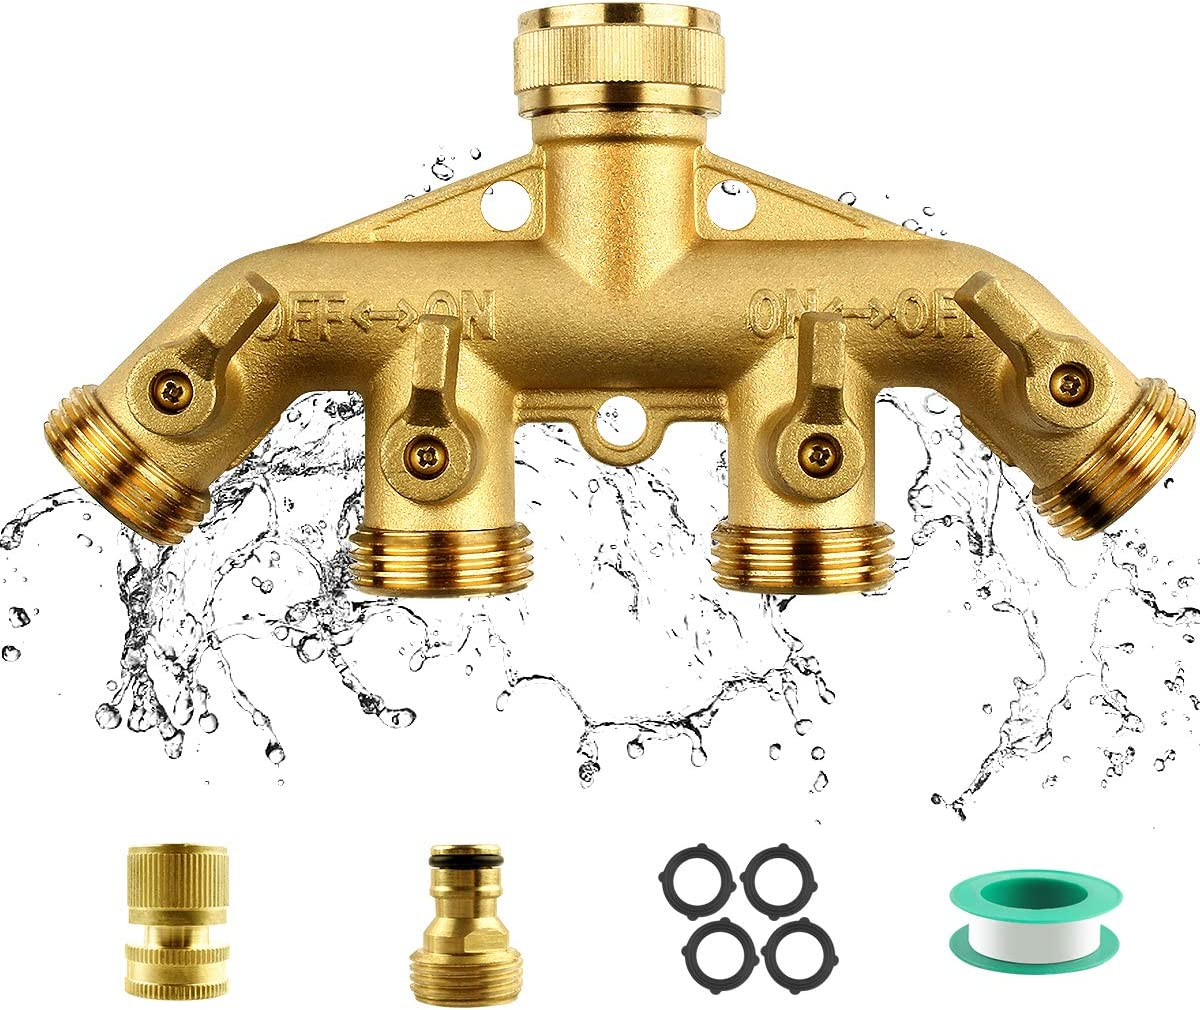 "RIFFUE Garden Hose Splitter 4 Way Heavy Duty Brass Hose Spigot Adapter with 4 Valves, Hose Connector 3/4"" with One Free Brass Quick Connector"